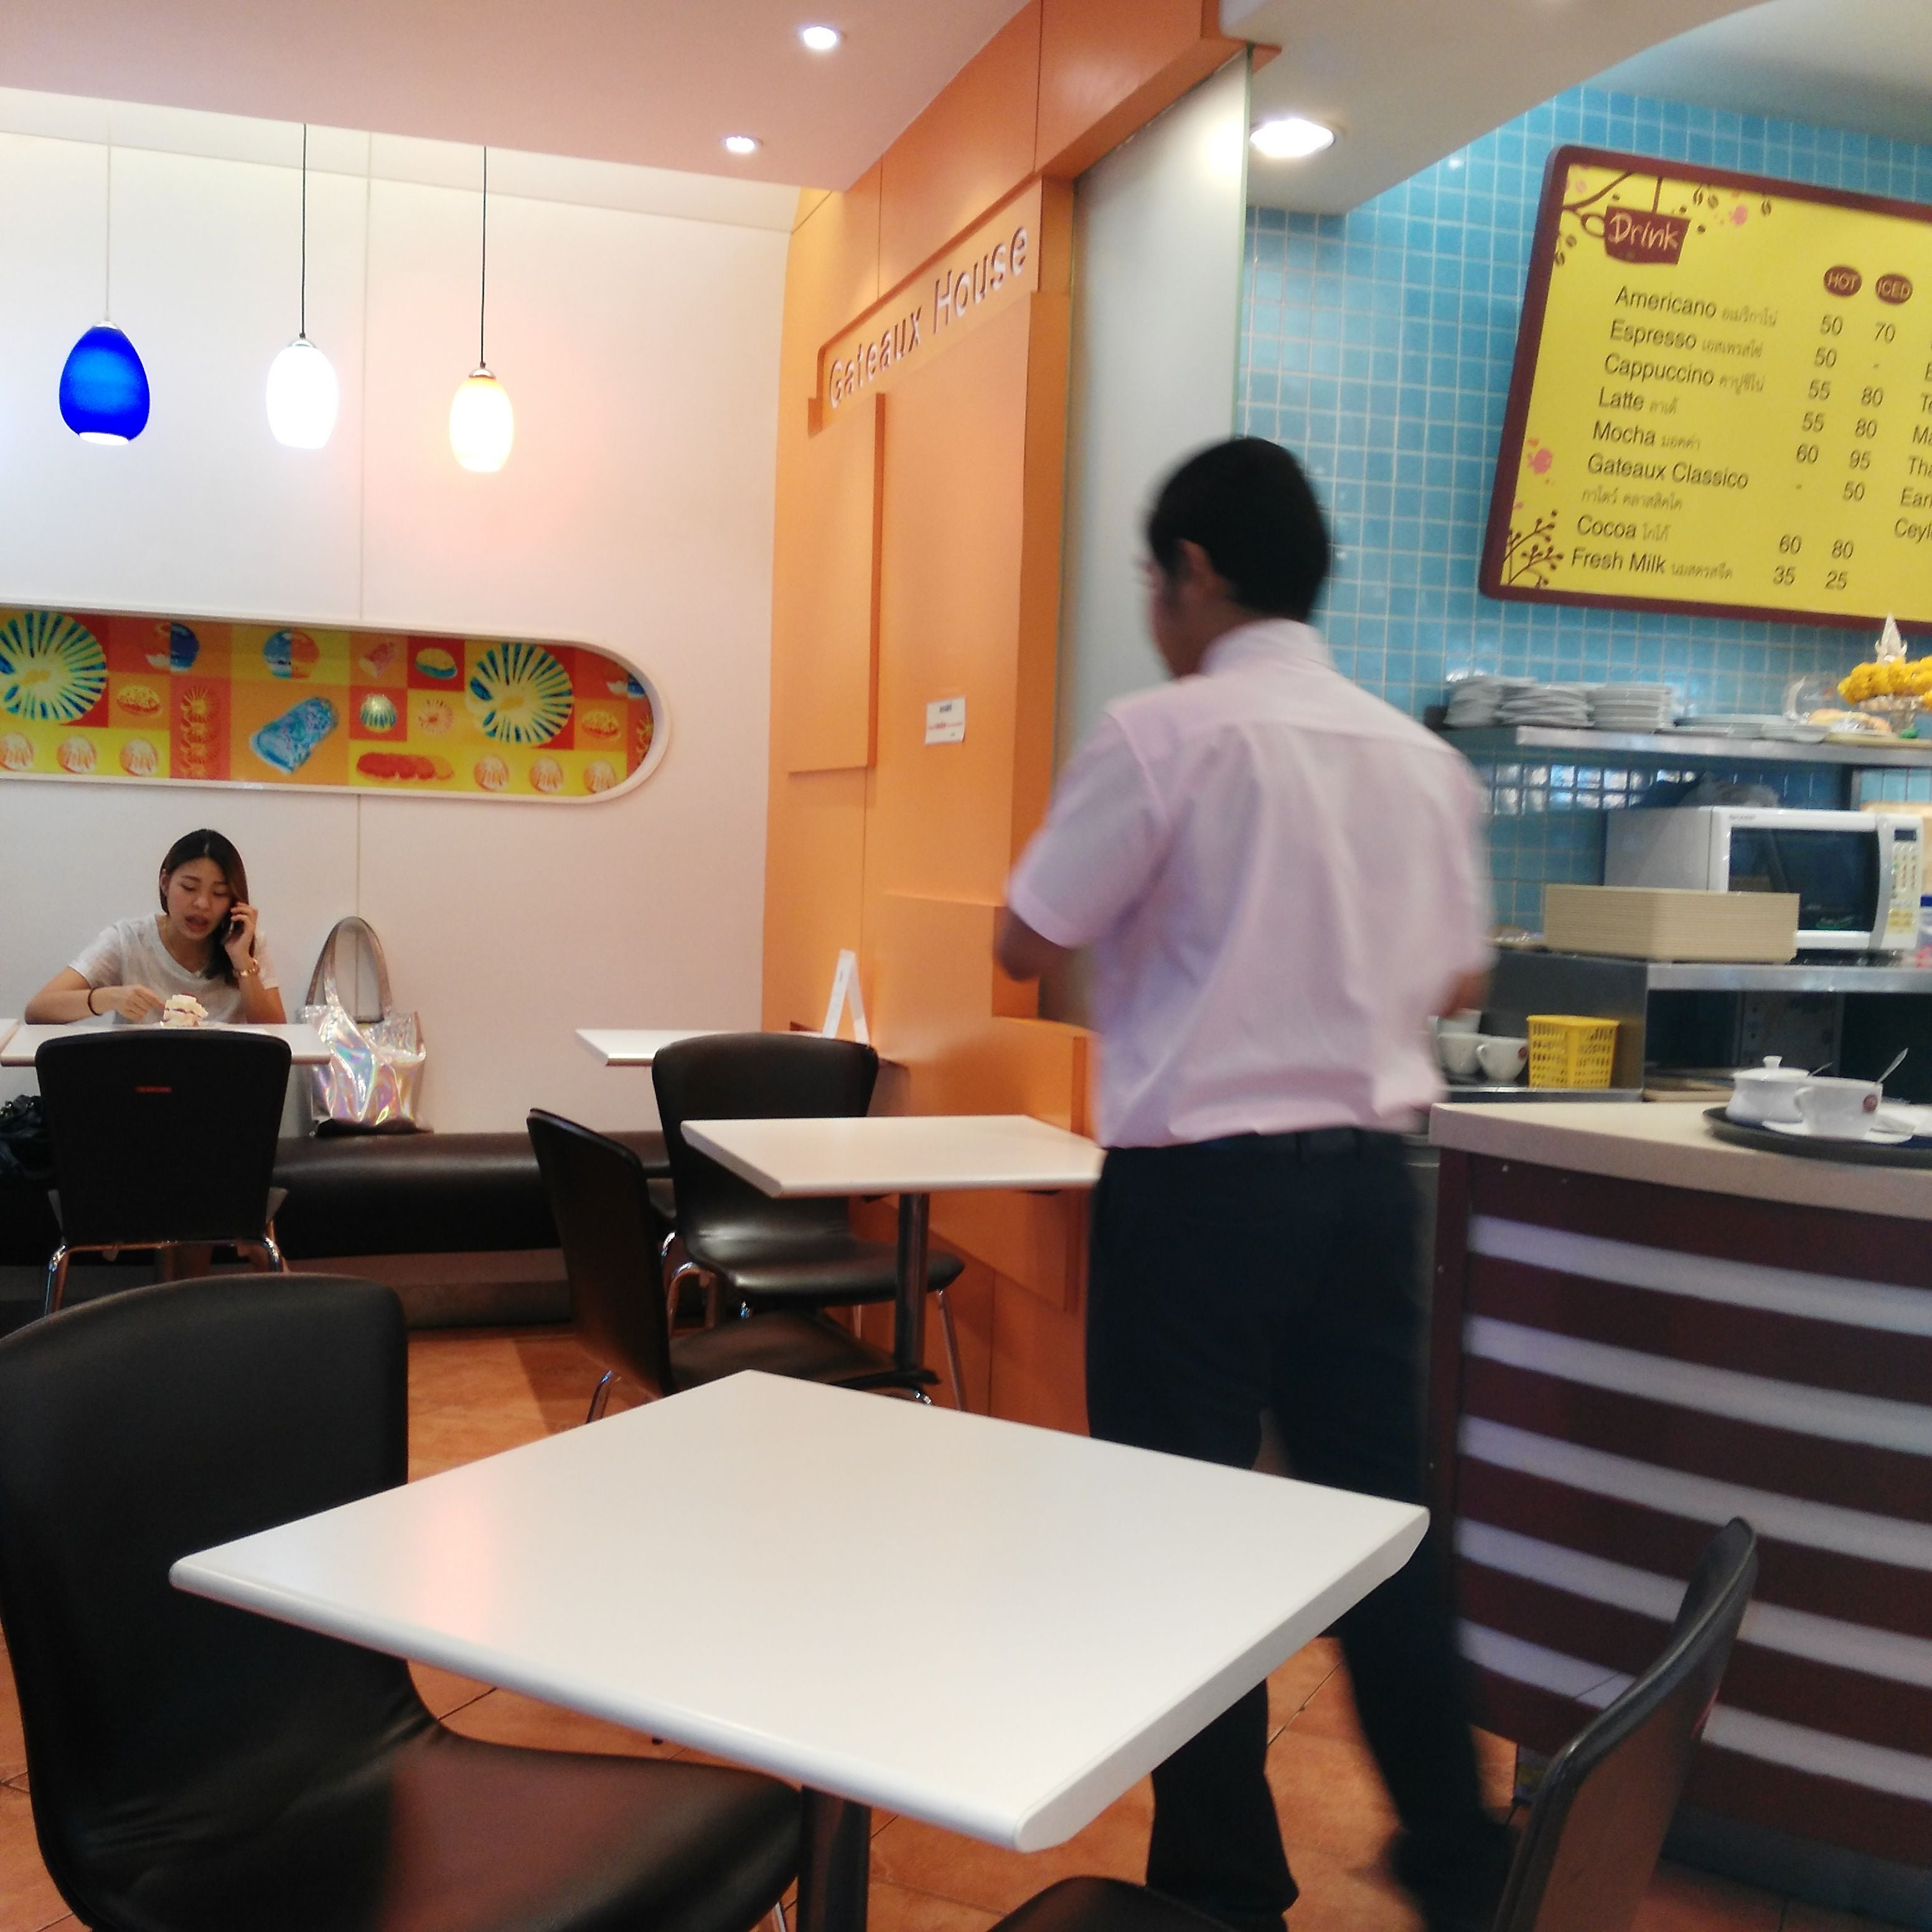 Room in Cafeteria Gateaux House